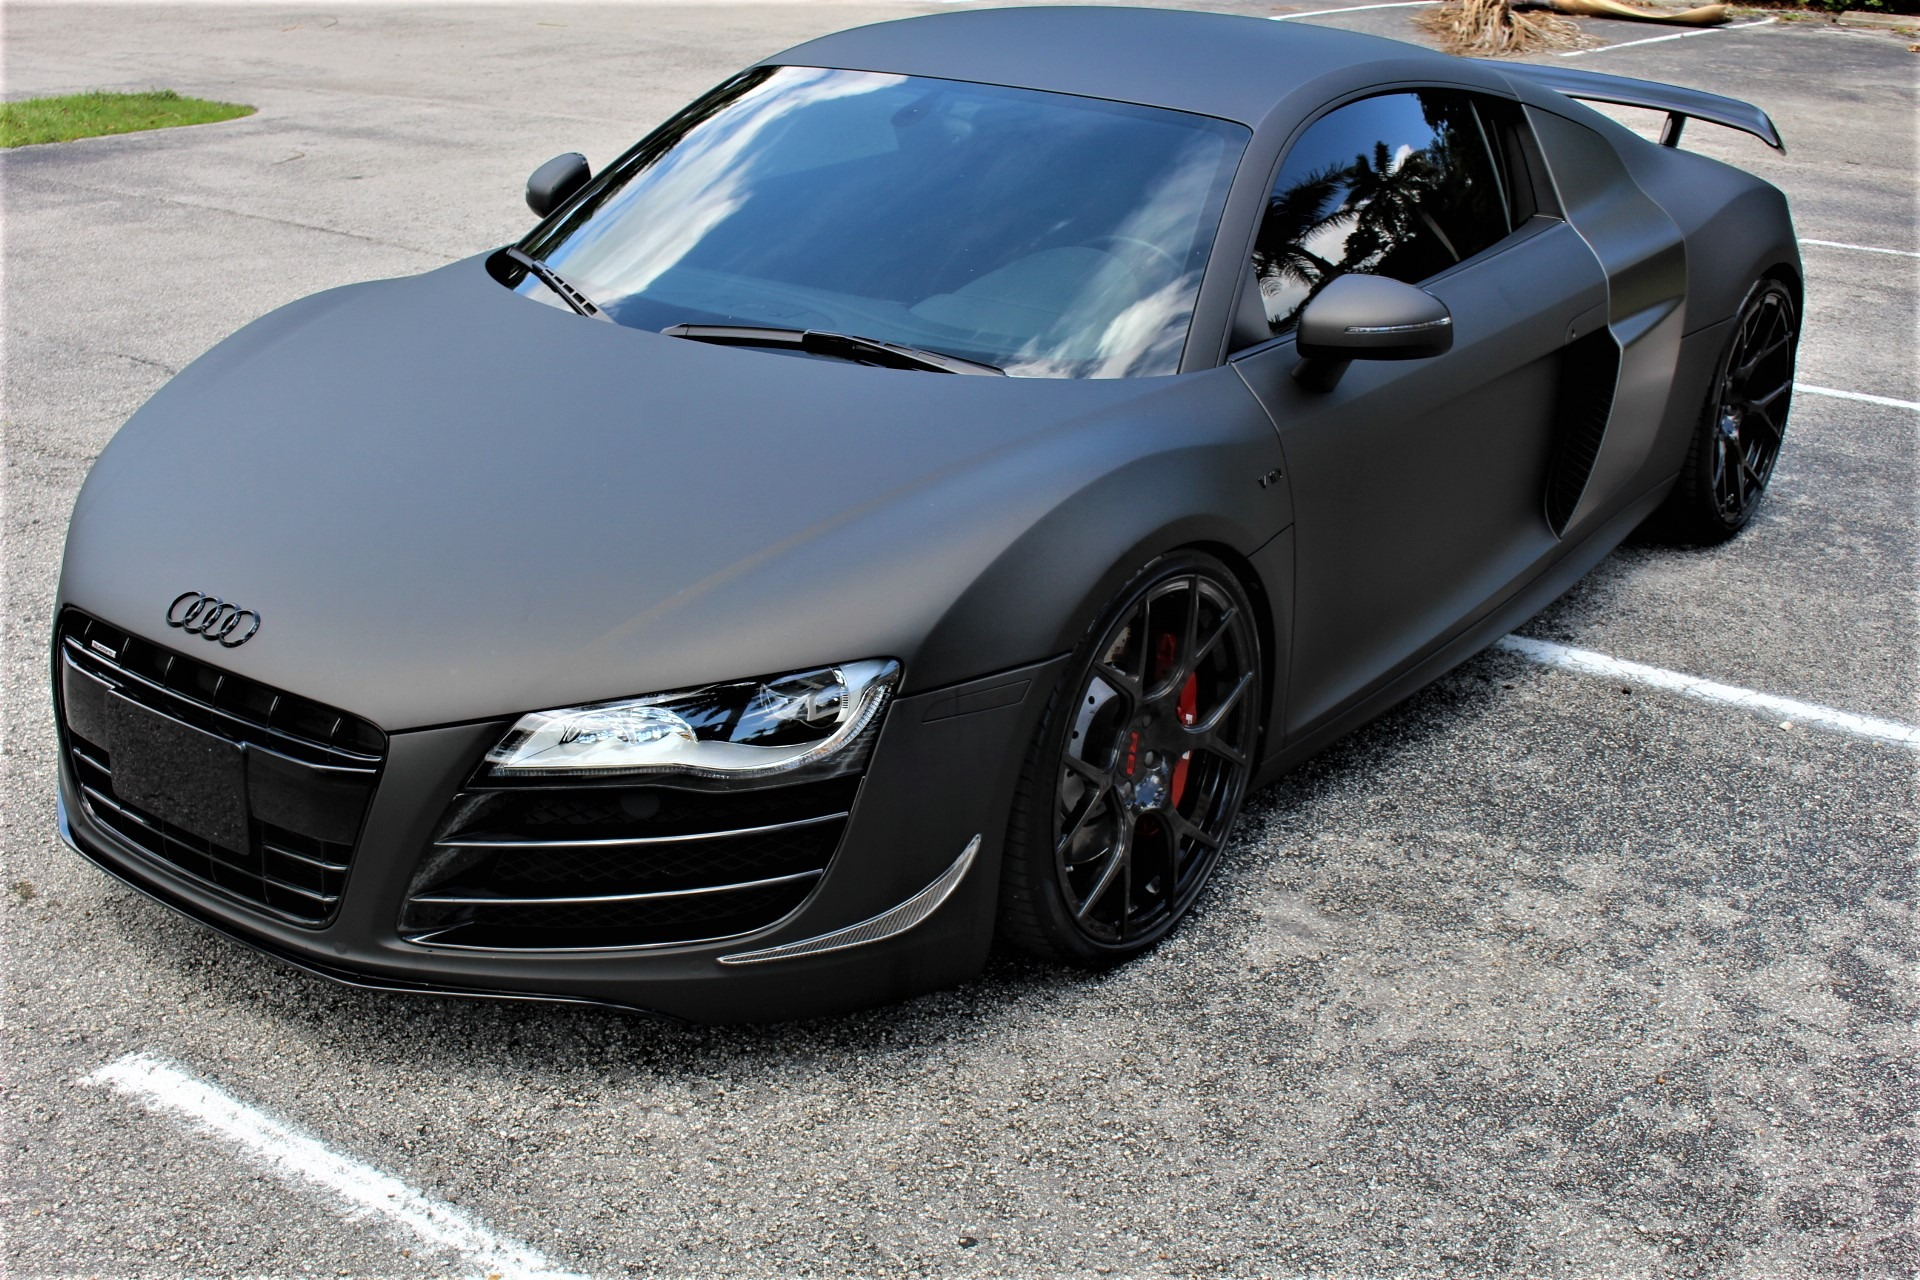 Used 2012 Audi R8 5.2 quattro for sale Sold at The Gables Sports Cars in Miami FL 33146 4